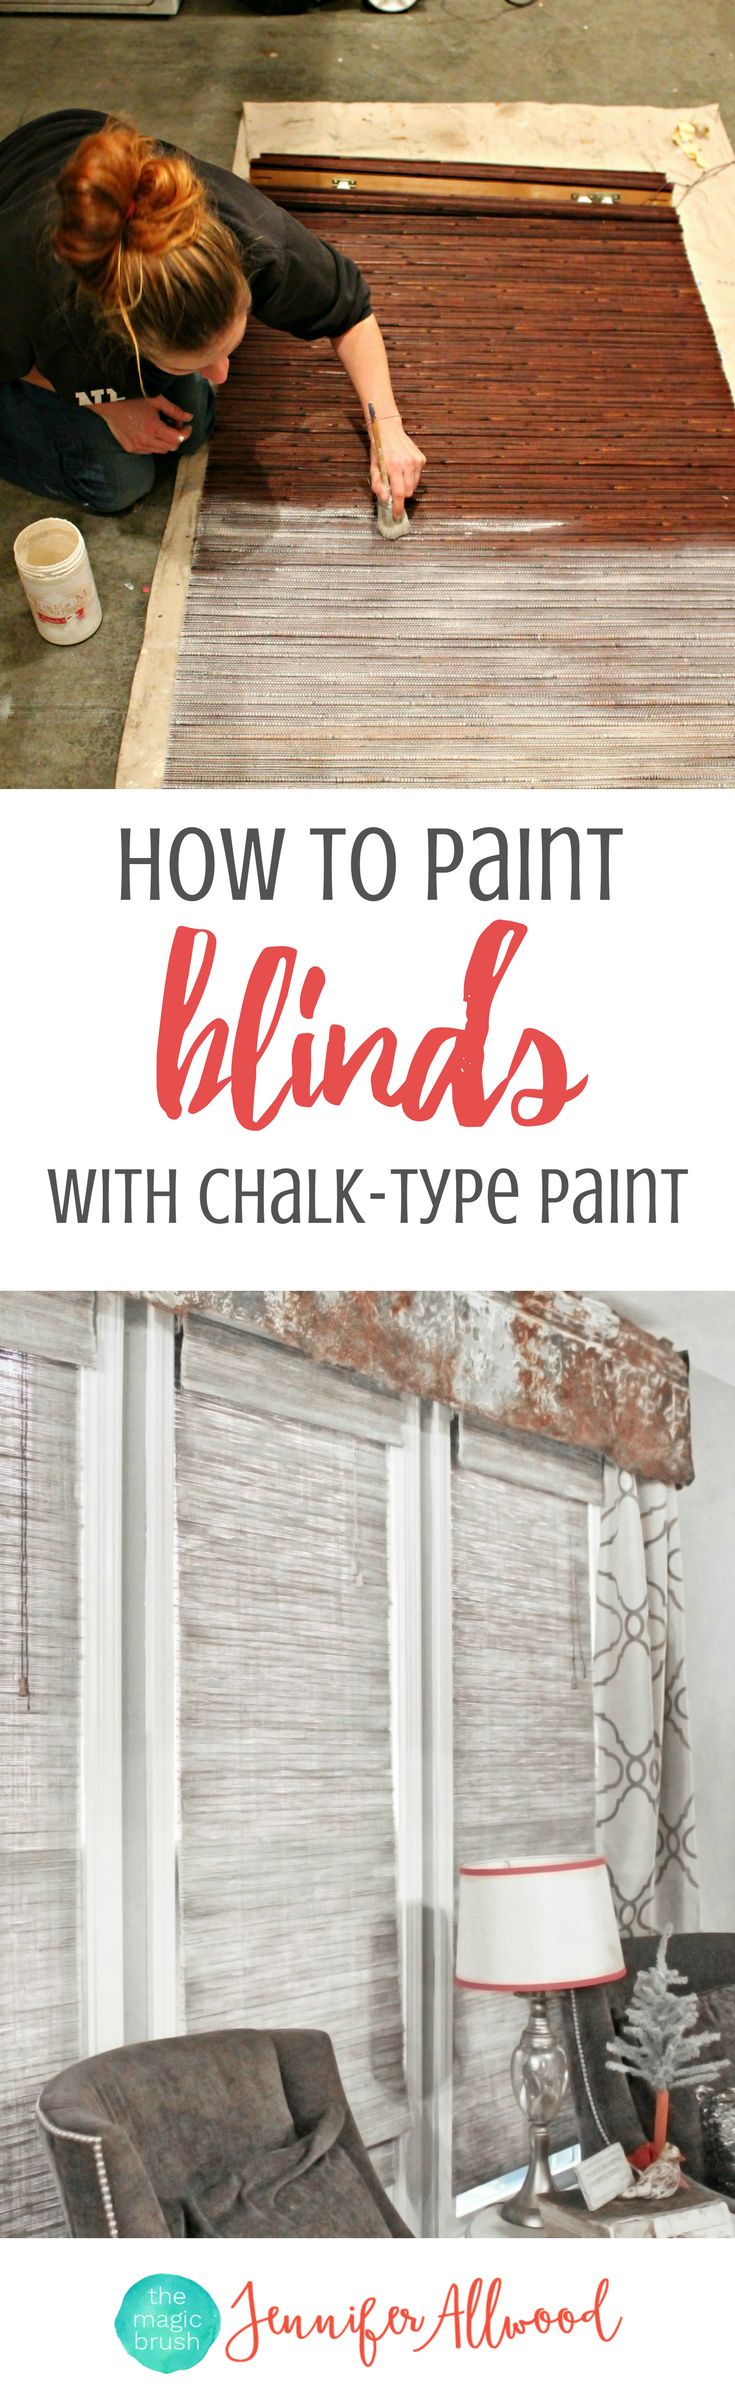 Painted Blinds & Painting Wood Blinds | Magic Brush | How to paint blinds from dark and drab to neutral using chalk-type paints | Home Decorating Ideas | Easy Home Updates with Paint